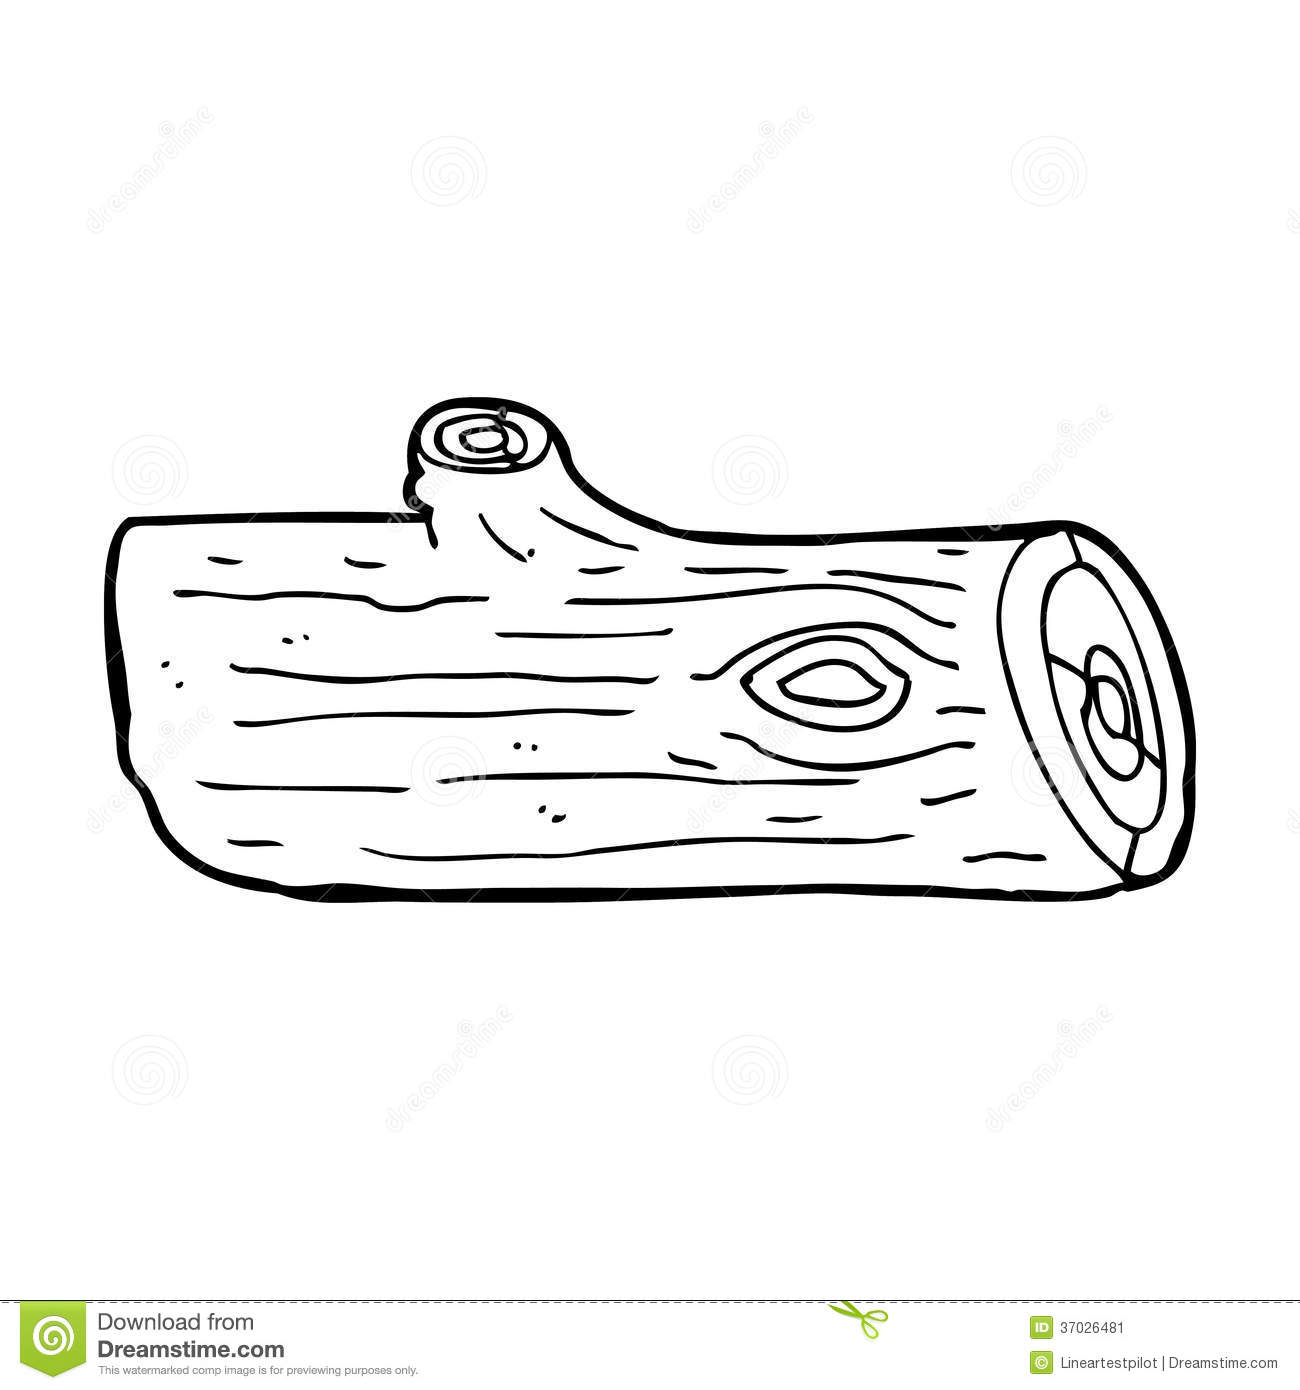 log-clipart-wood-log-clipart-black-and-white.jpg